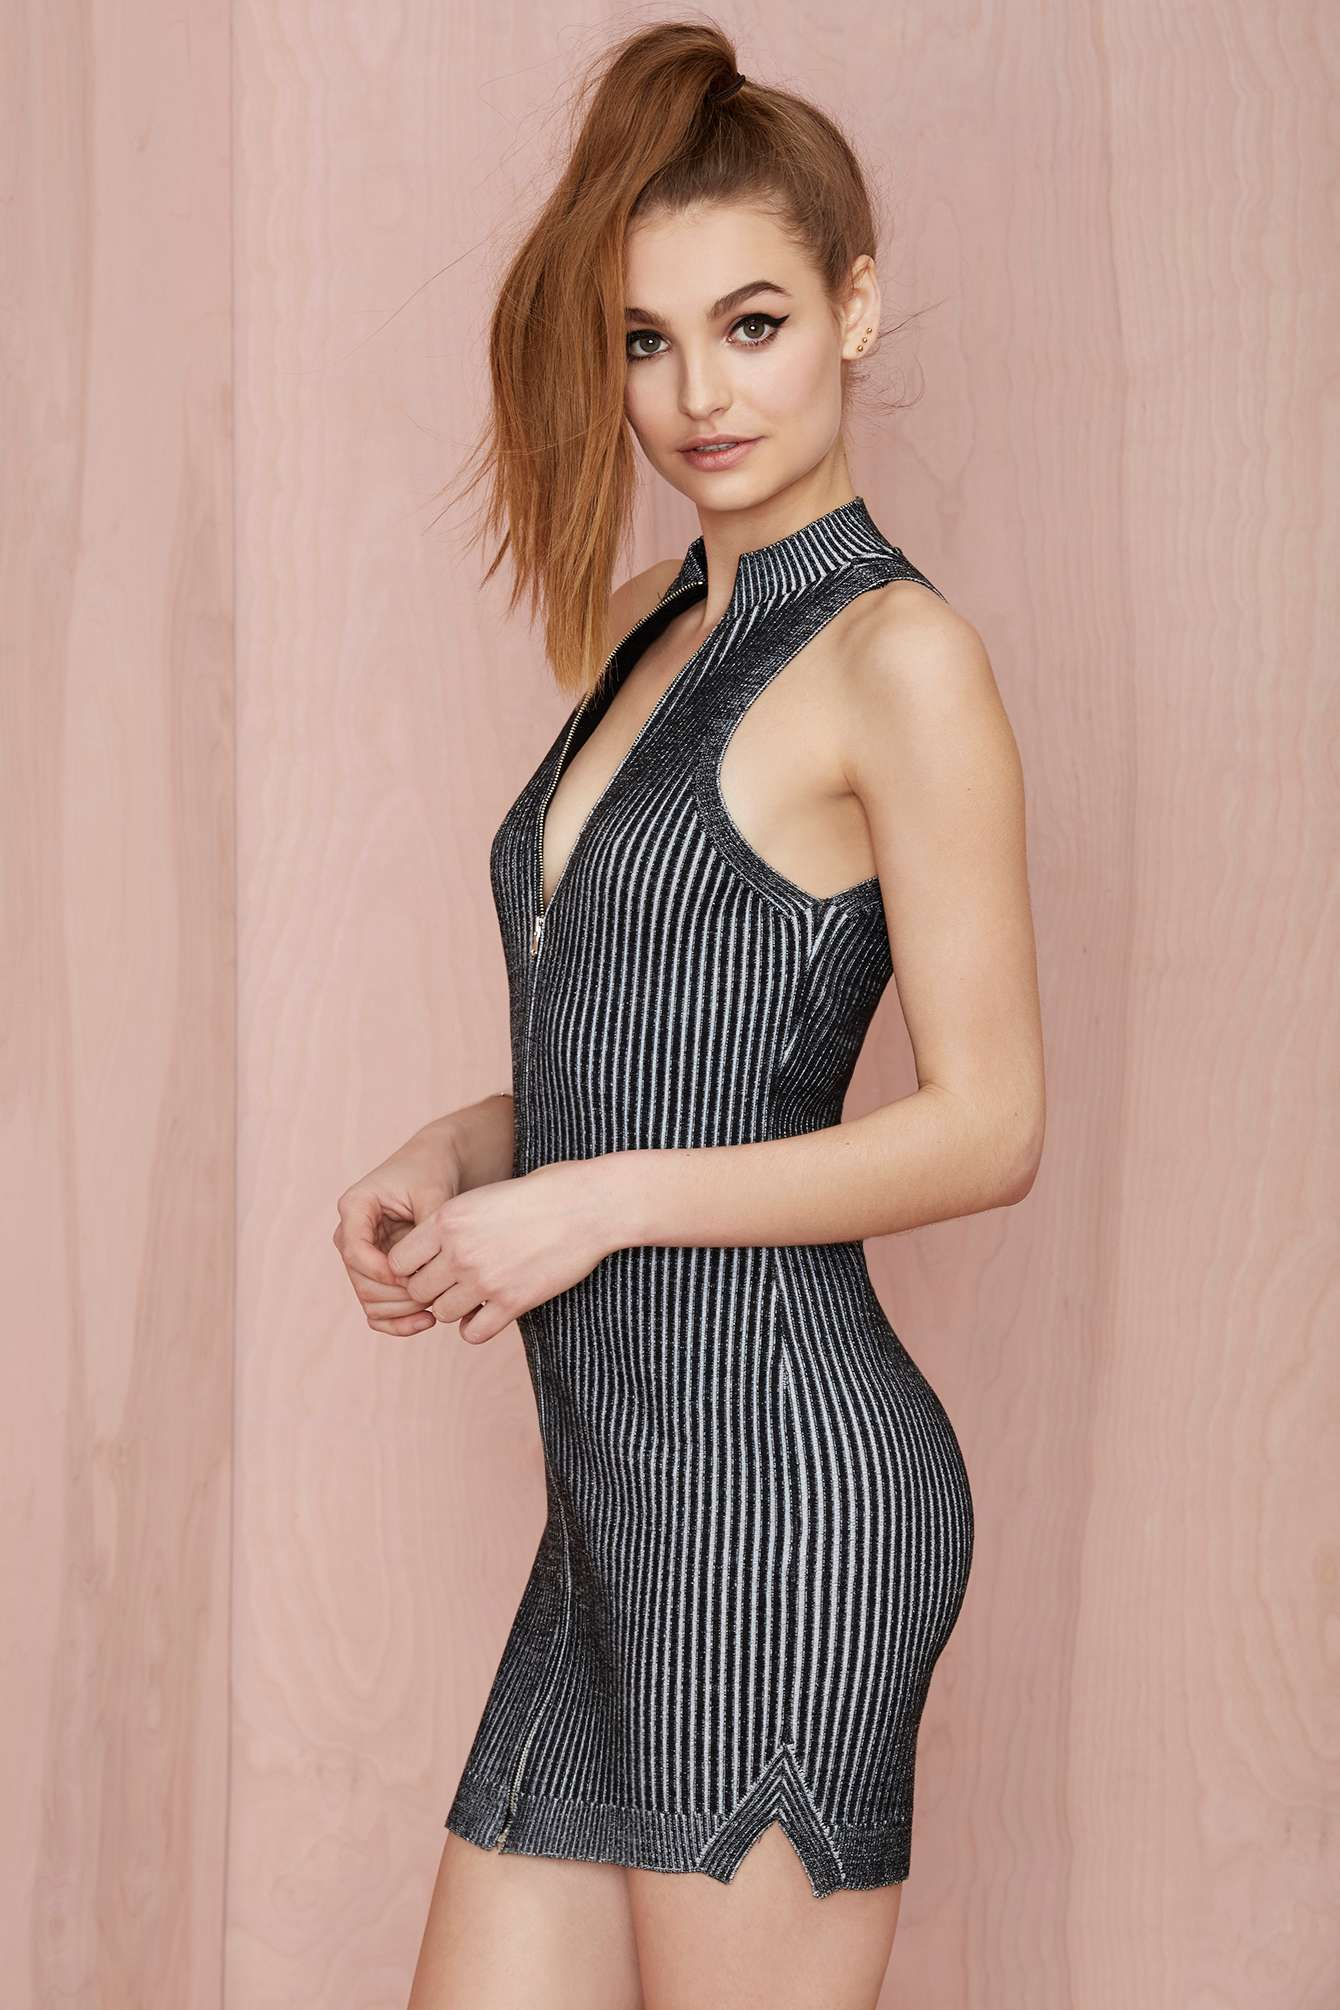 Nasty Gal Fool for the City Ribbed Dress | Shop Work Hard, Play Harder at Nasty Gal